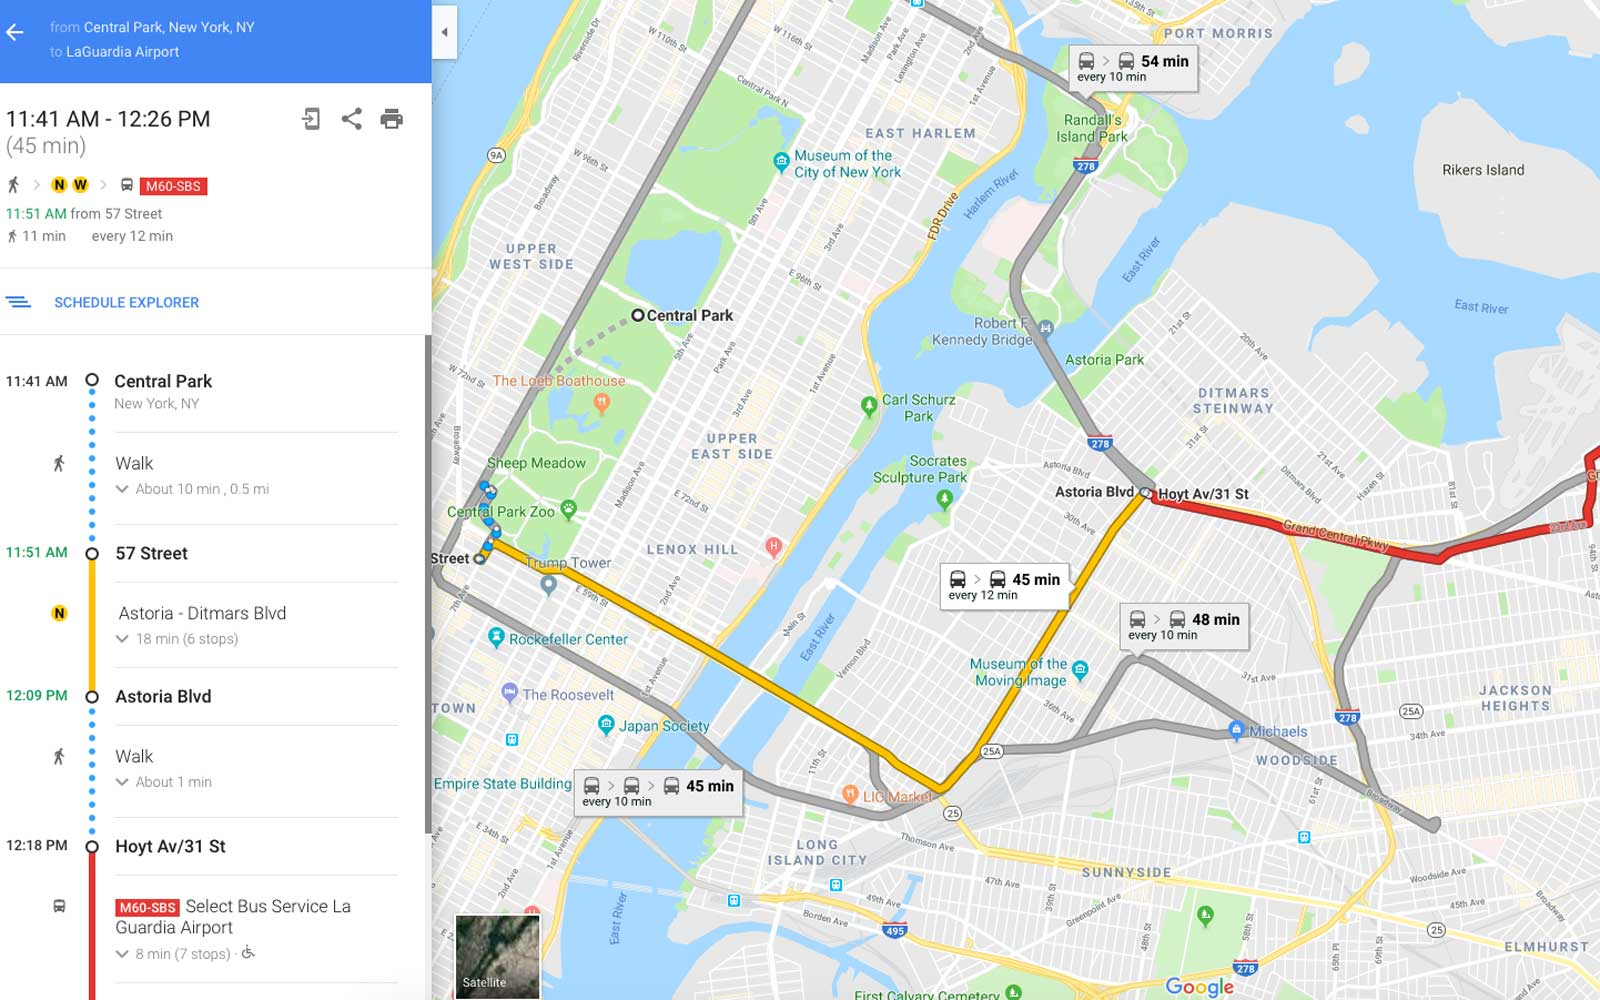 Google Maps directions for public transit